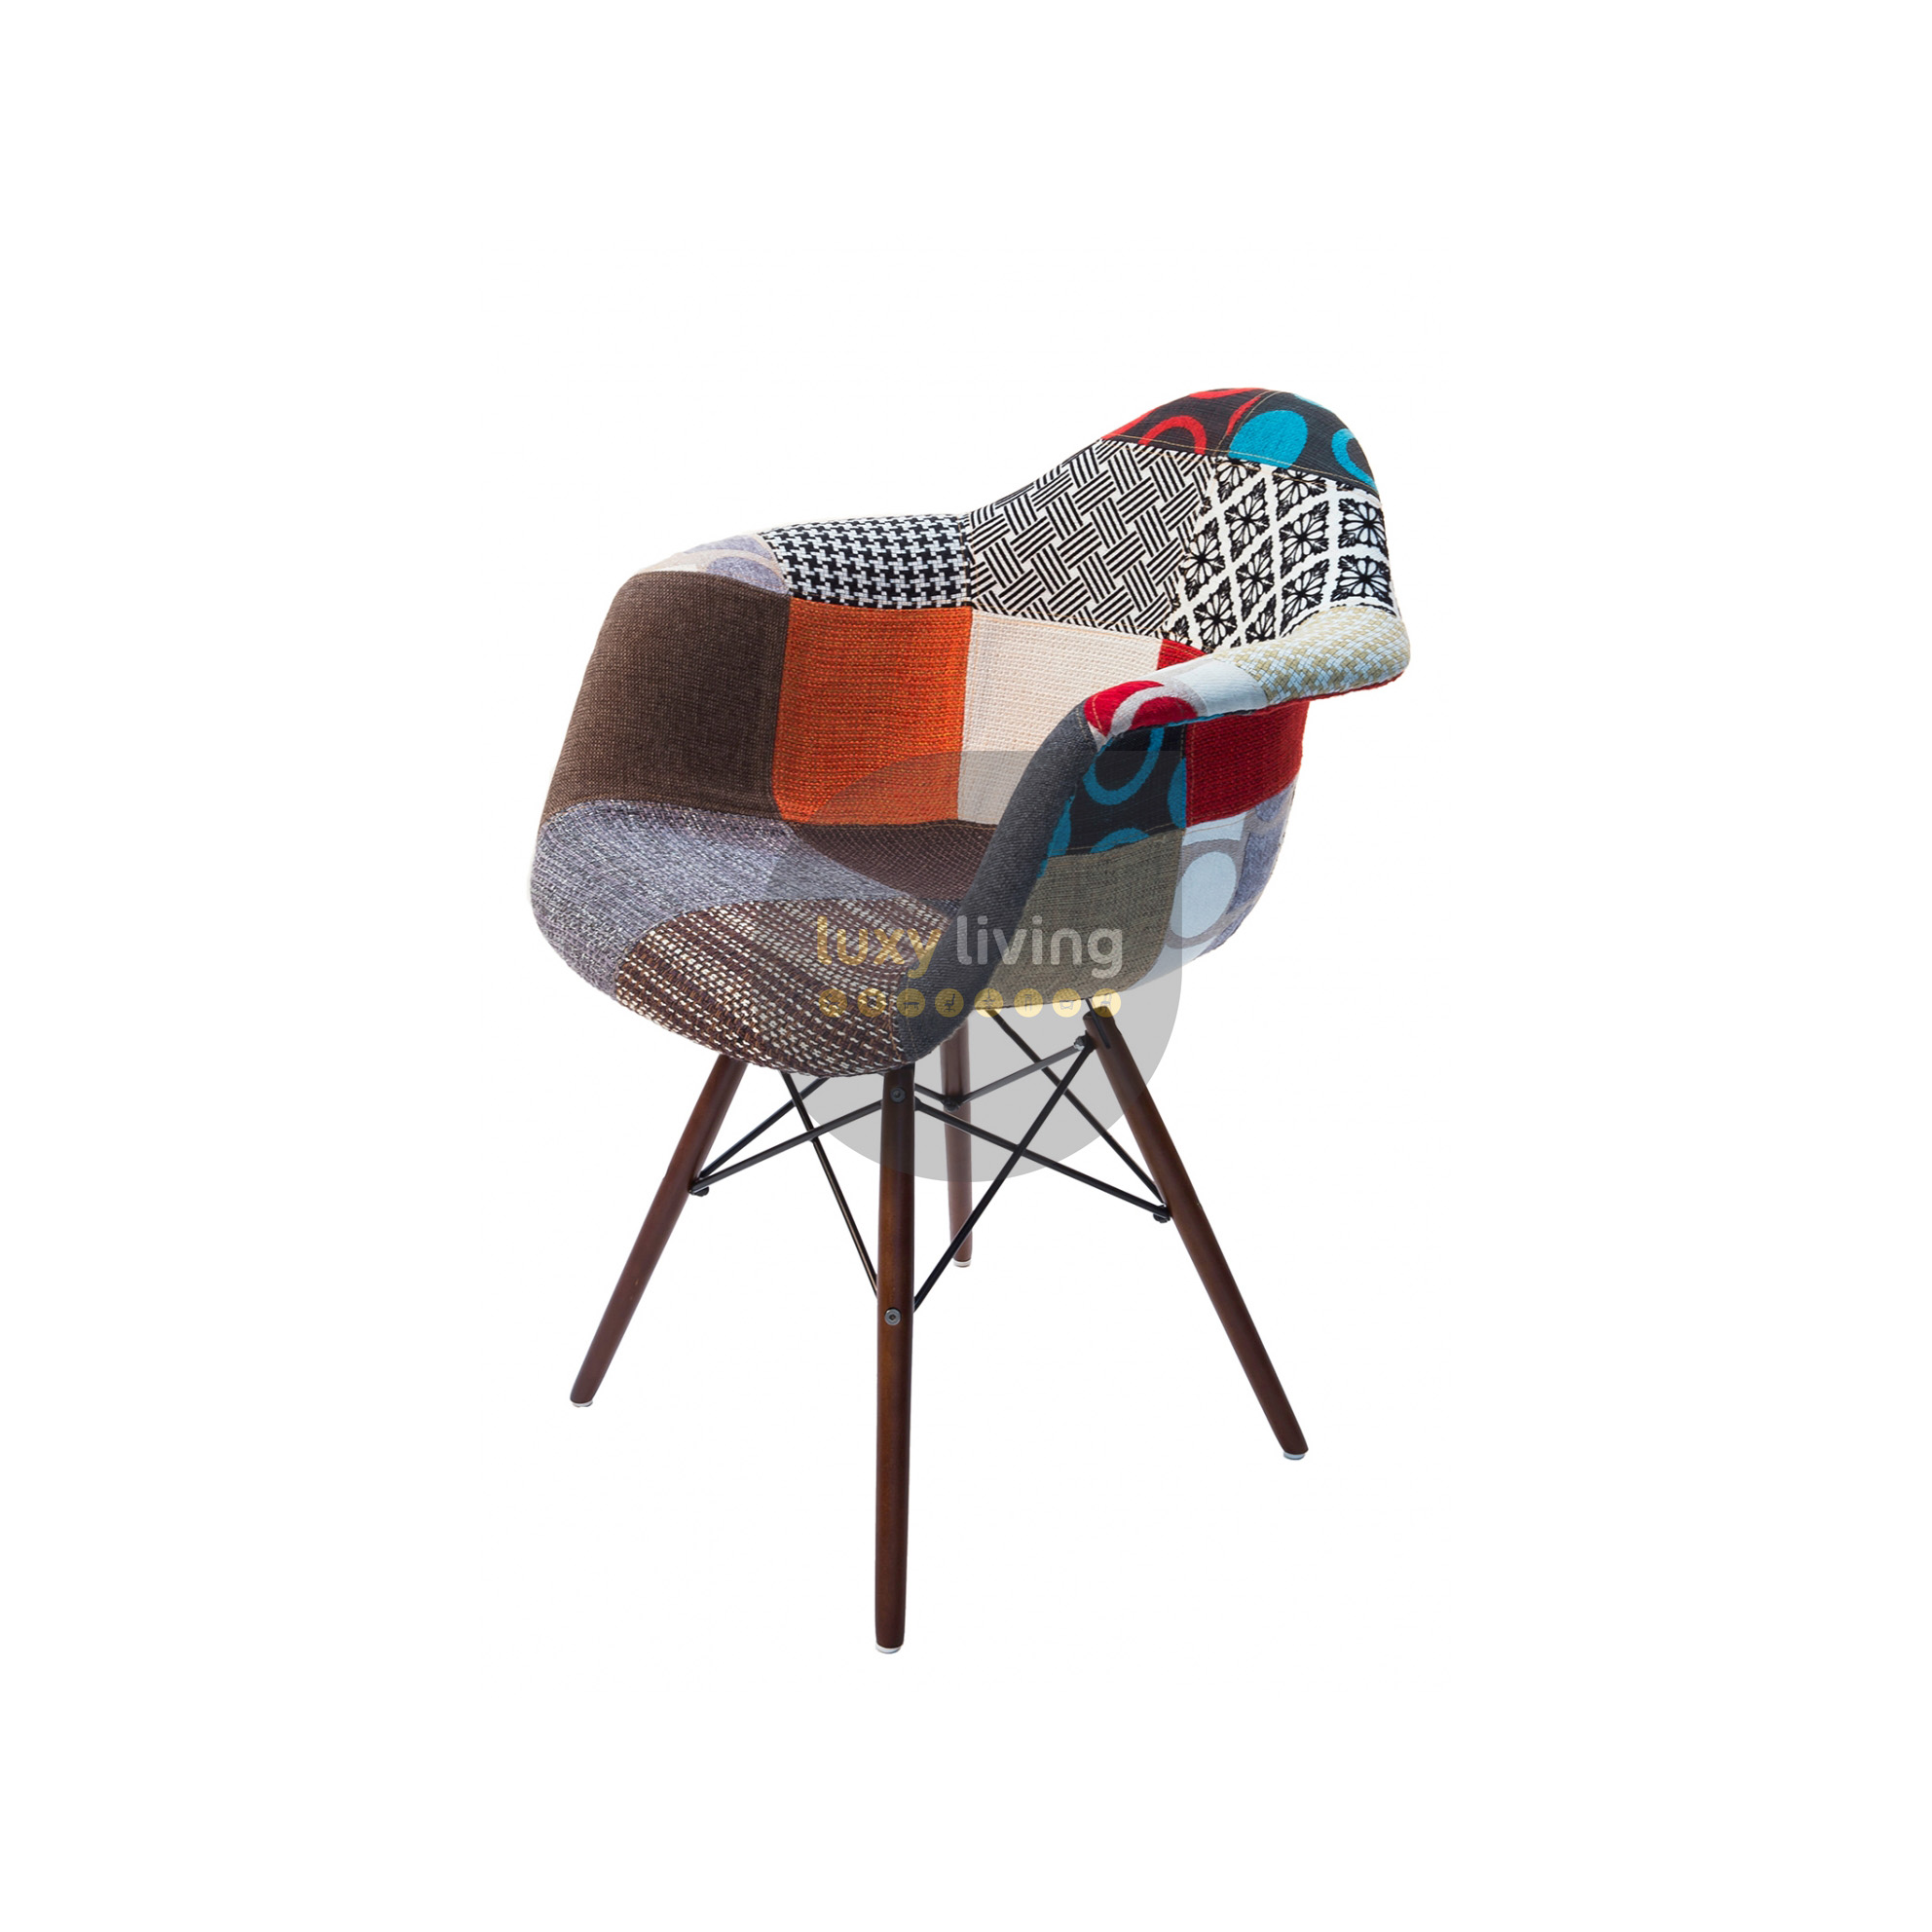 eiffel chair wood legs lawn chairs for heavy people replica eames daw multi coloured patches natural v2 0